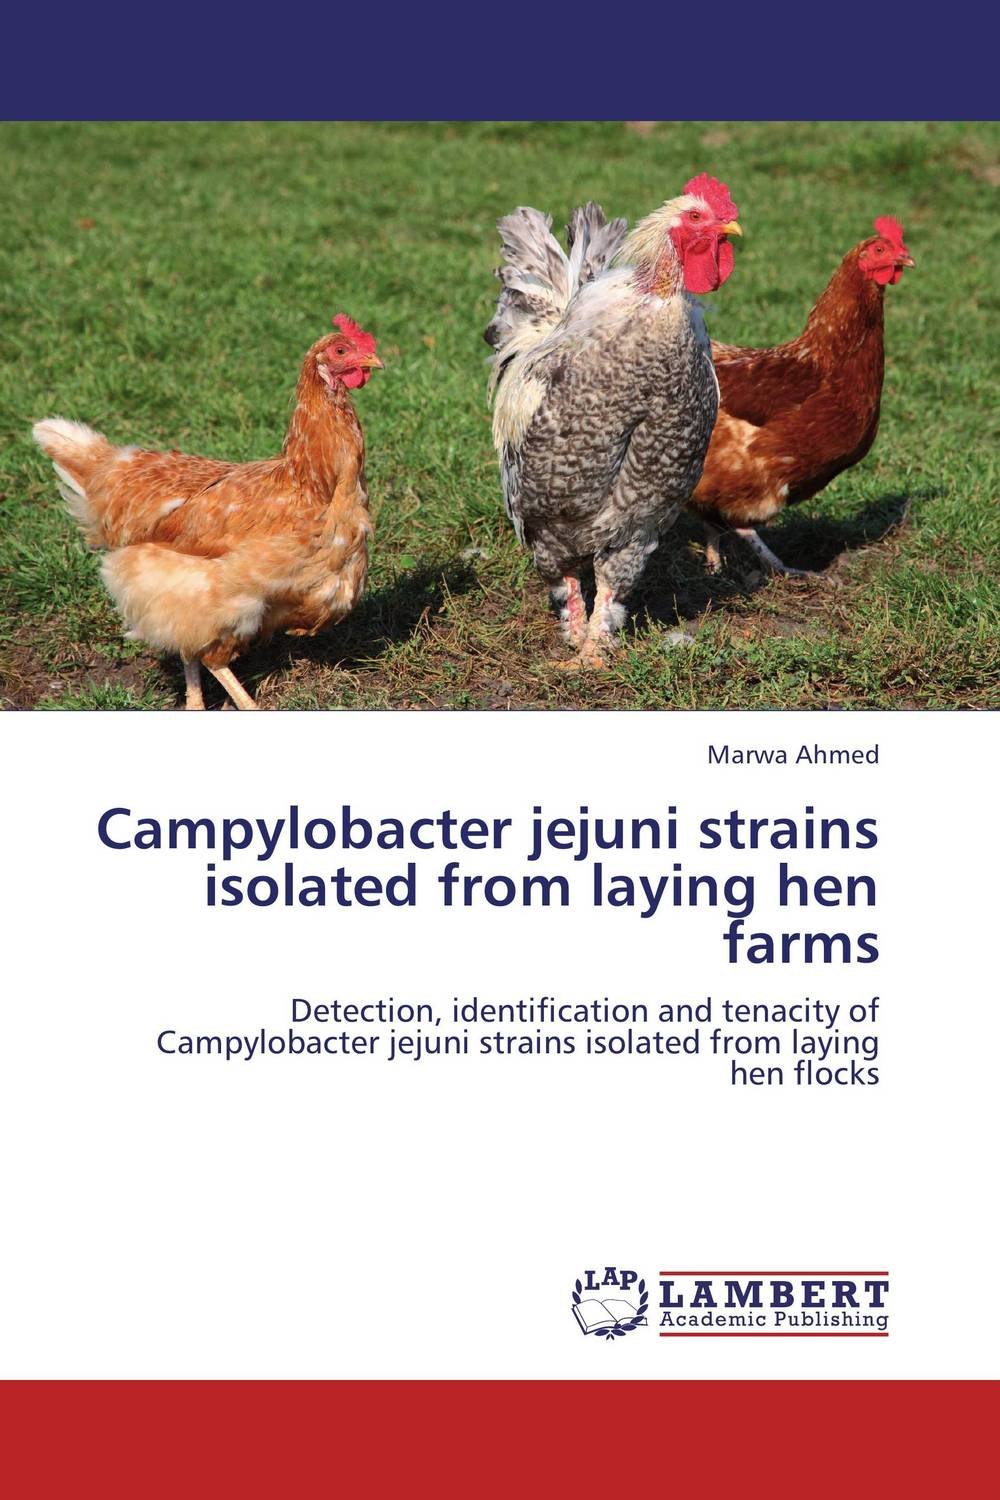 Campylobacter jejuni strains isolated from laying hen farms estimating the quantity and quality of poultry litter in tamilnadu